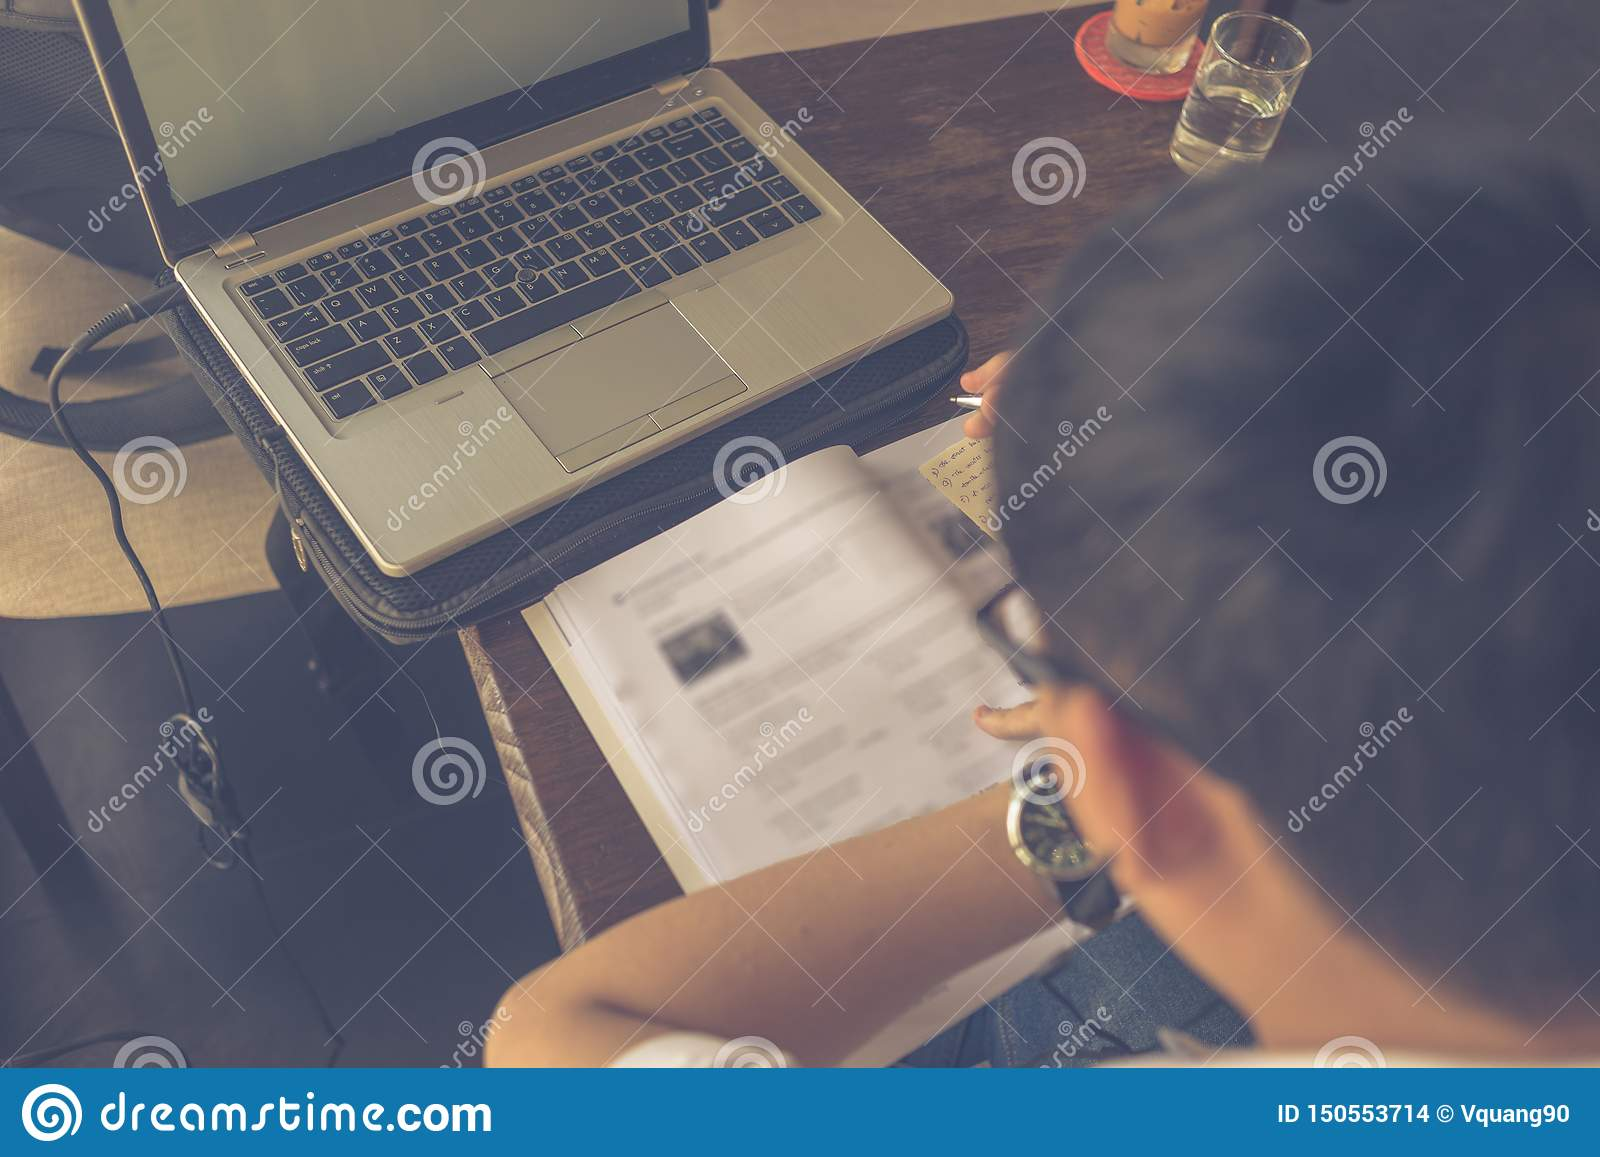 Rear view of Asian studying English with laptop and workbook